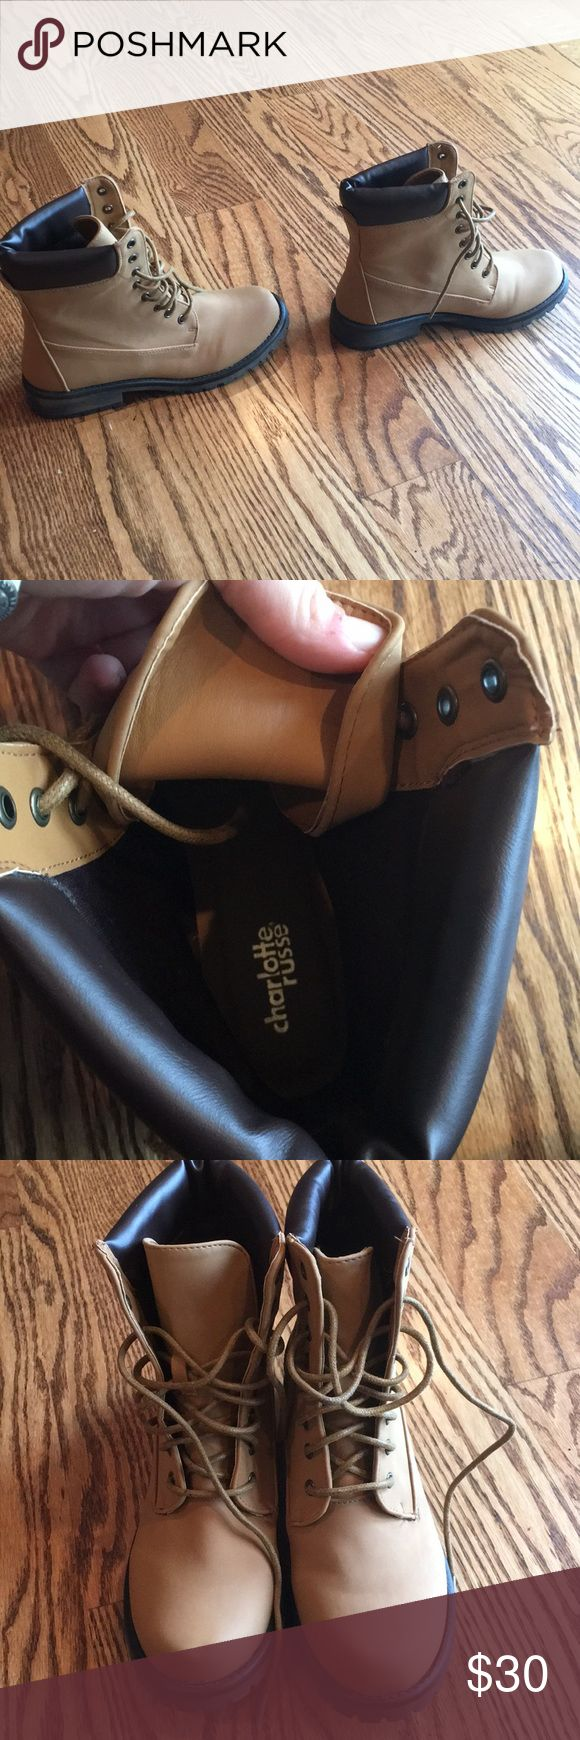 Charlotte Russe Jason boots (Timberland style) These are stylish mid length boots with Timberland look. However, they are not meant for snow or mountainous weather. They are brand new, no imperfections. They are a women's size 7. Charlotte Russe Shoes Combat & Moto Boots